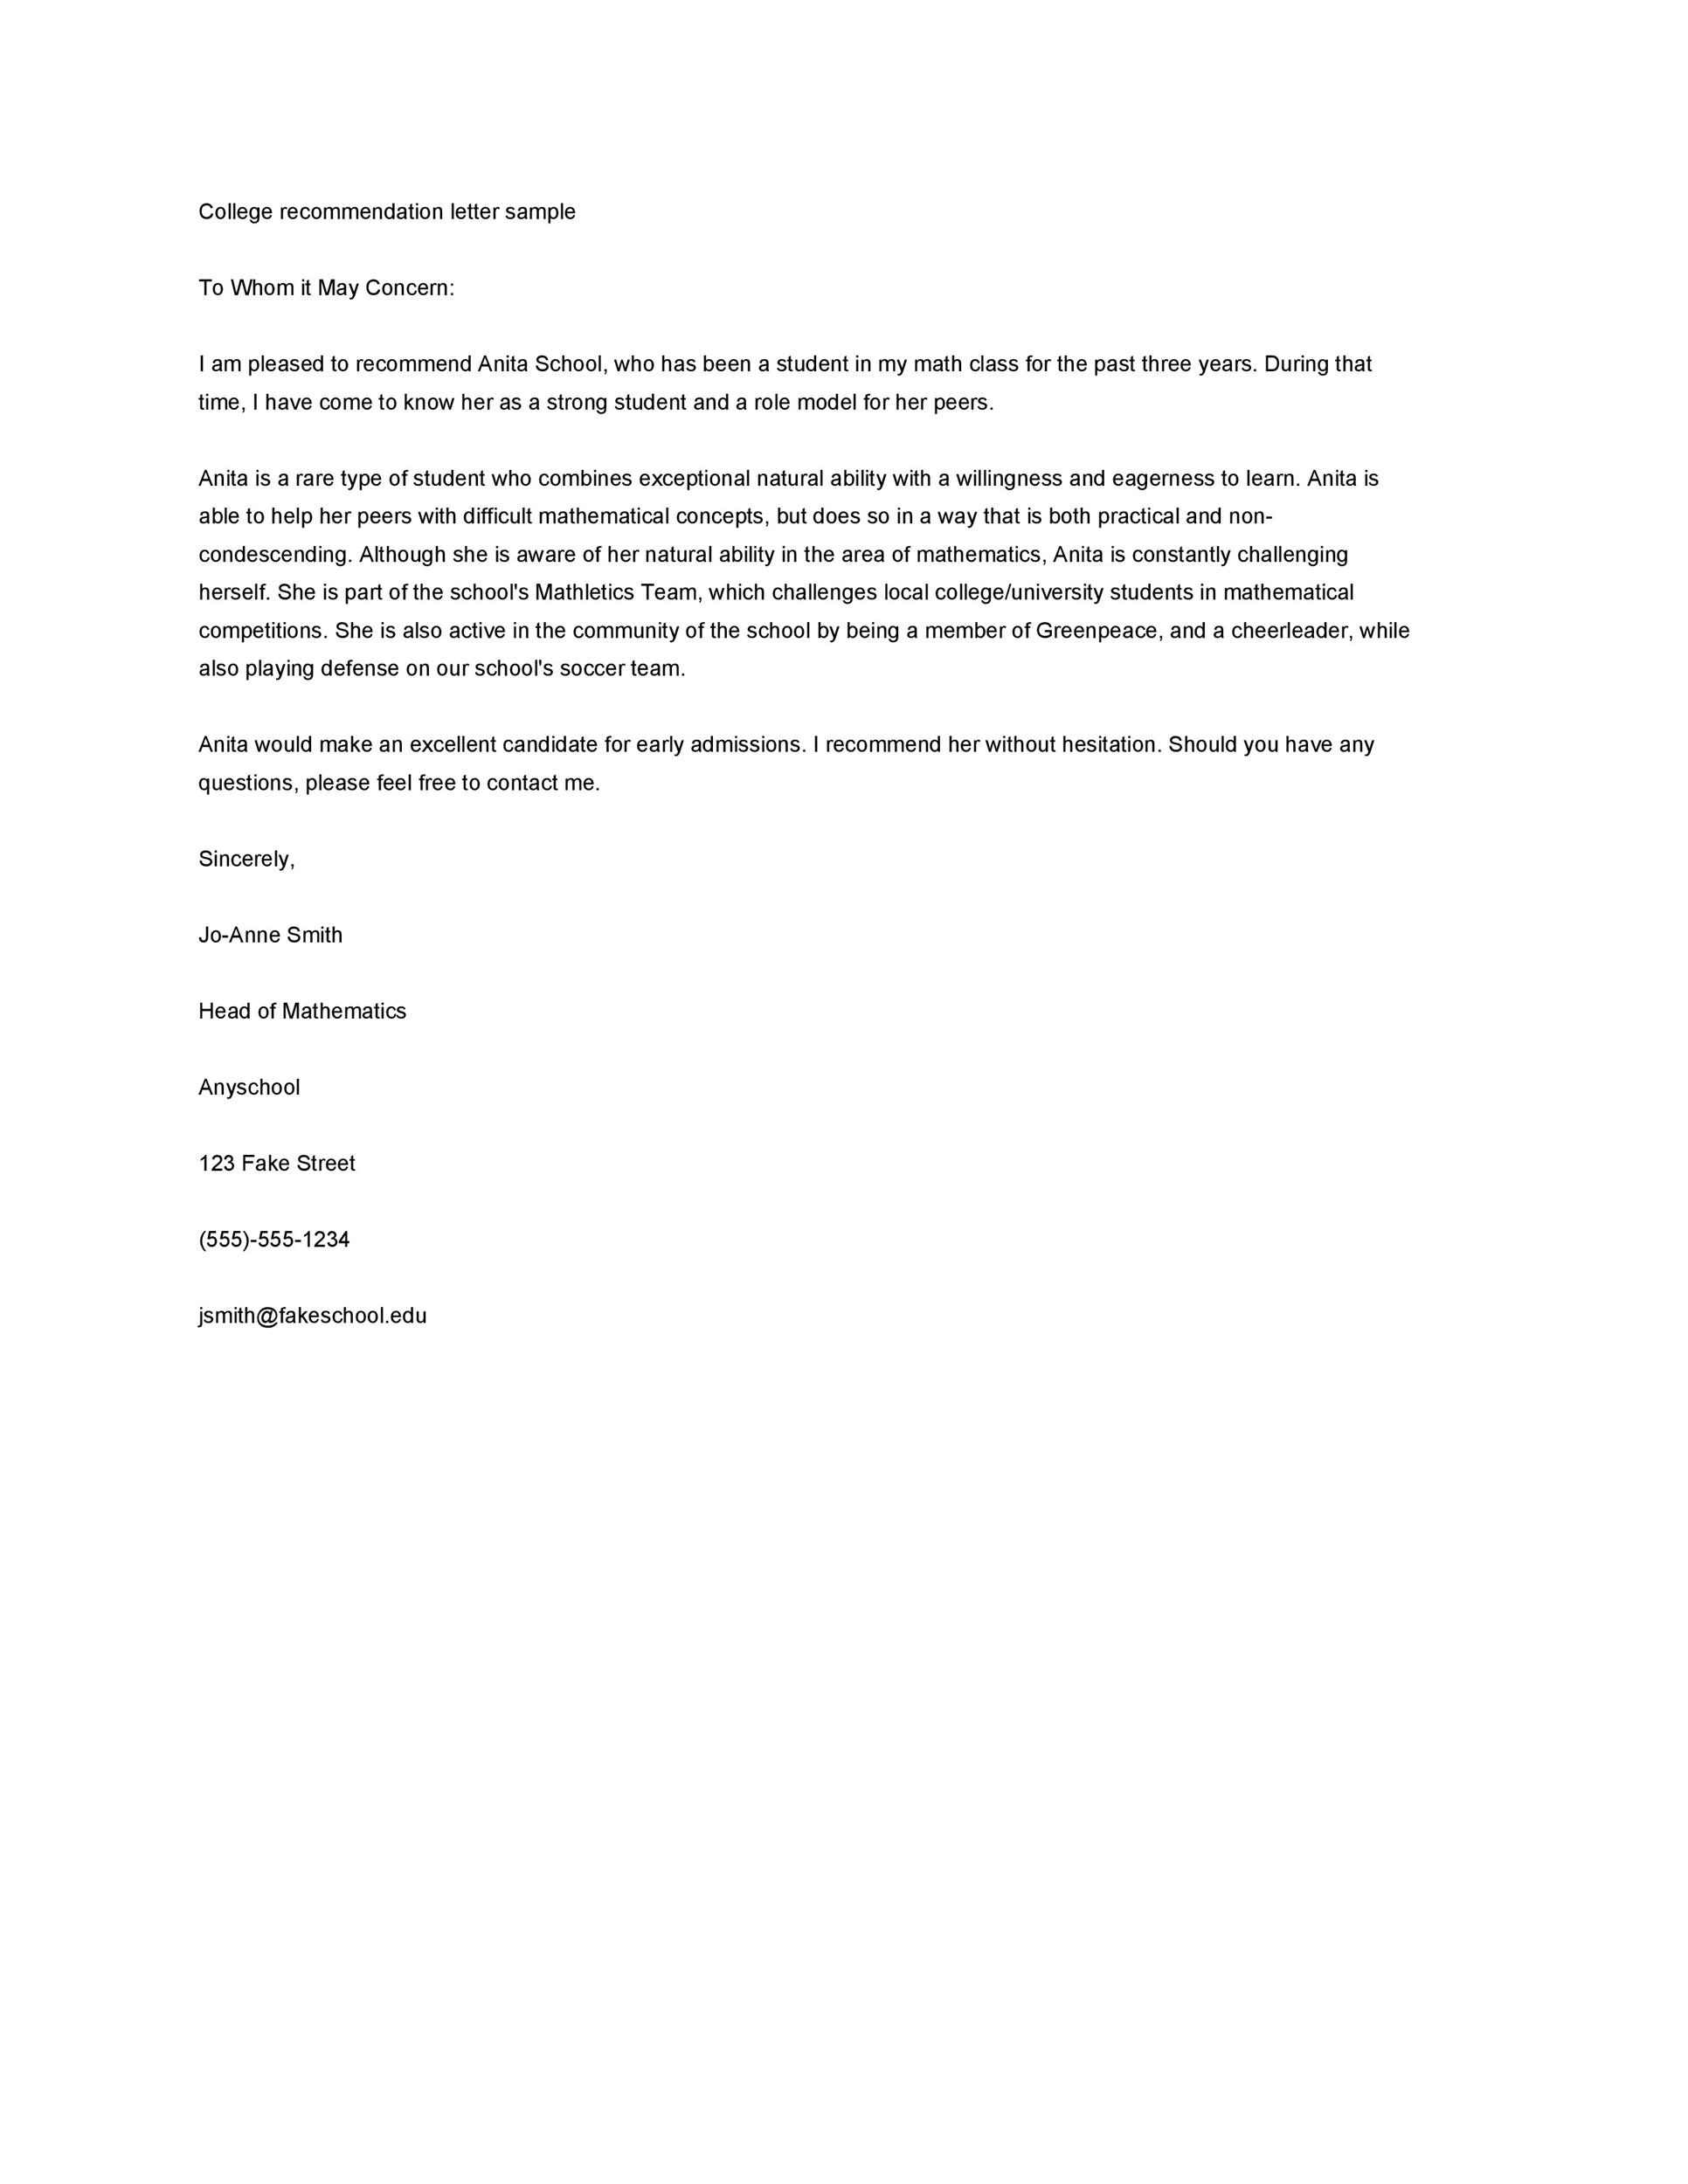 Formal Letter Template For Students from templatelab.com